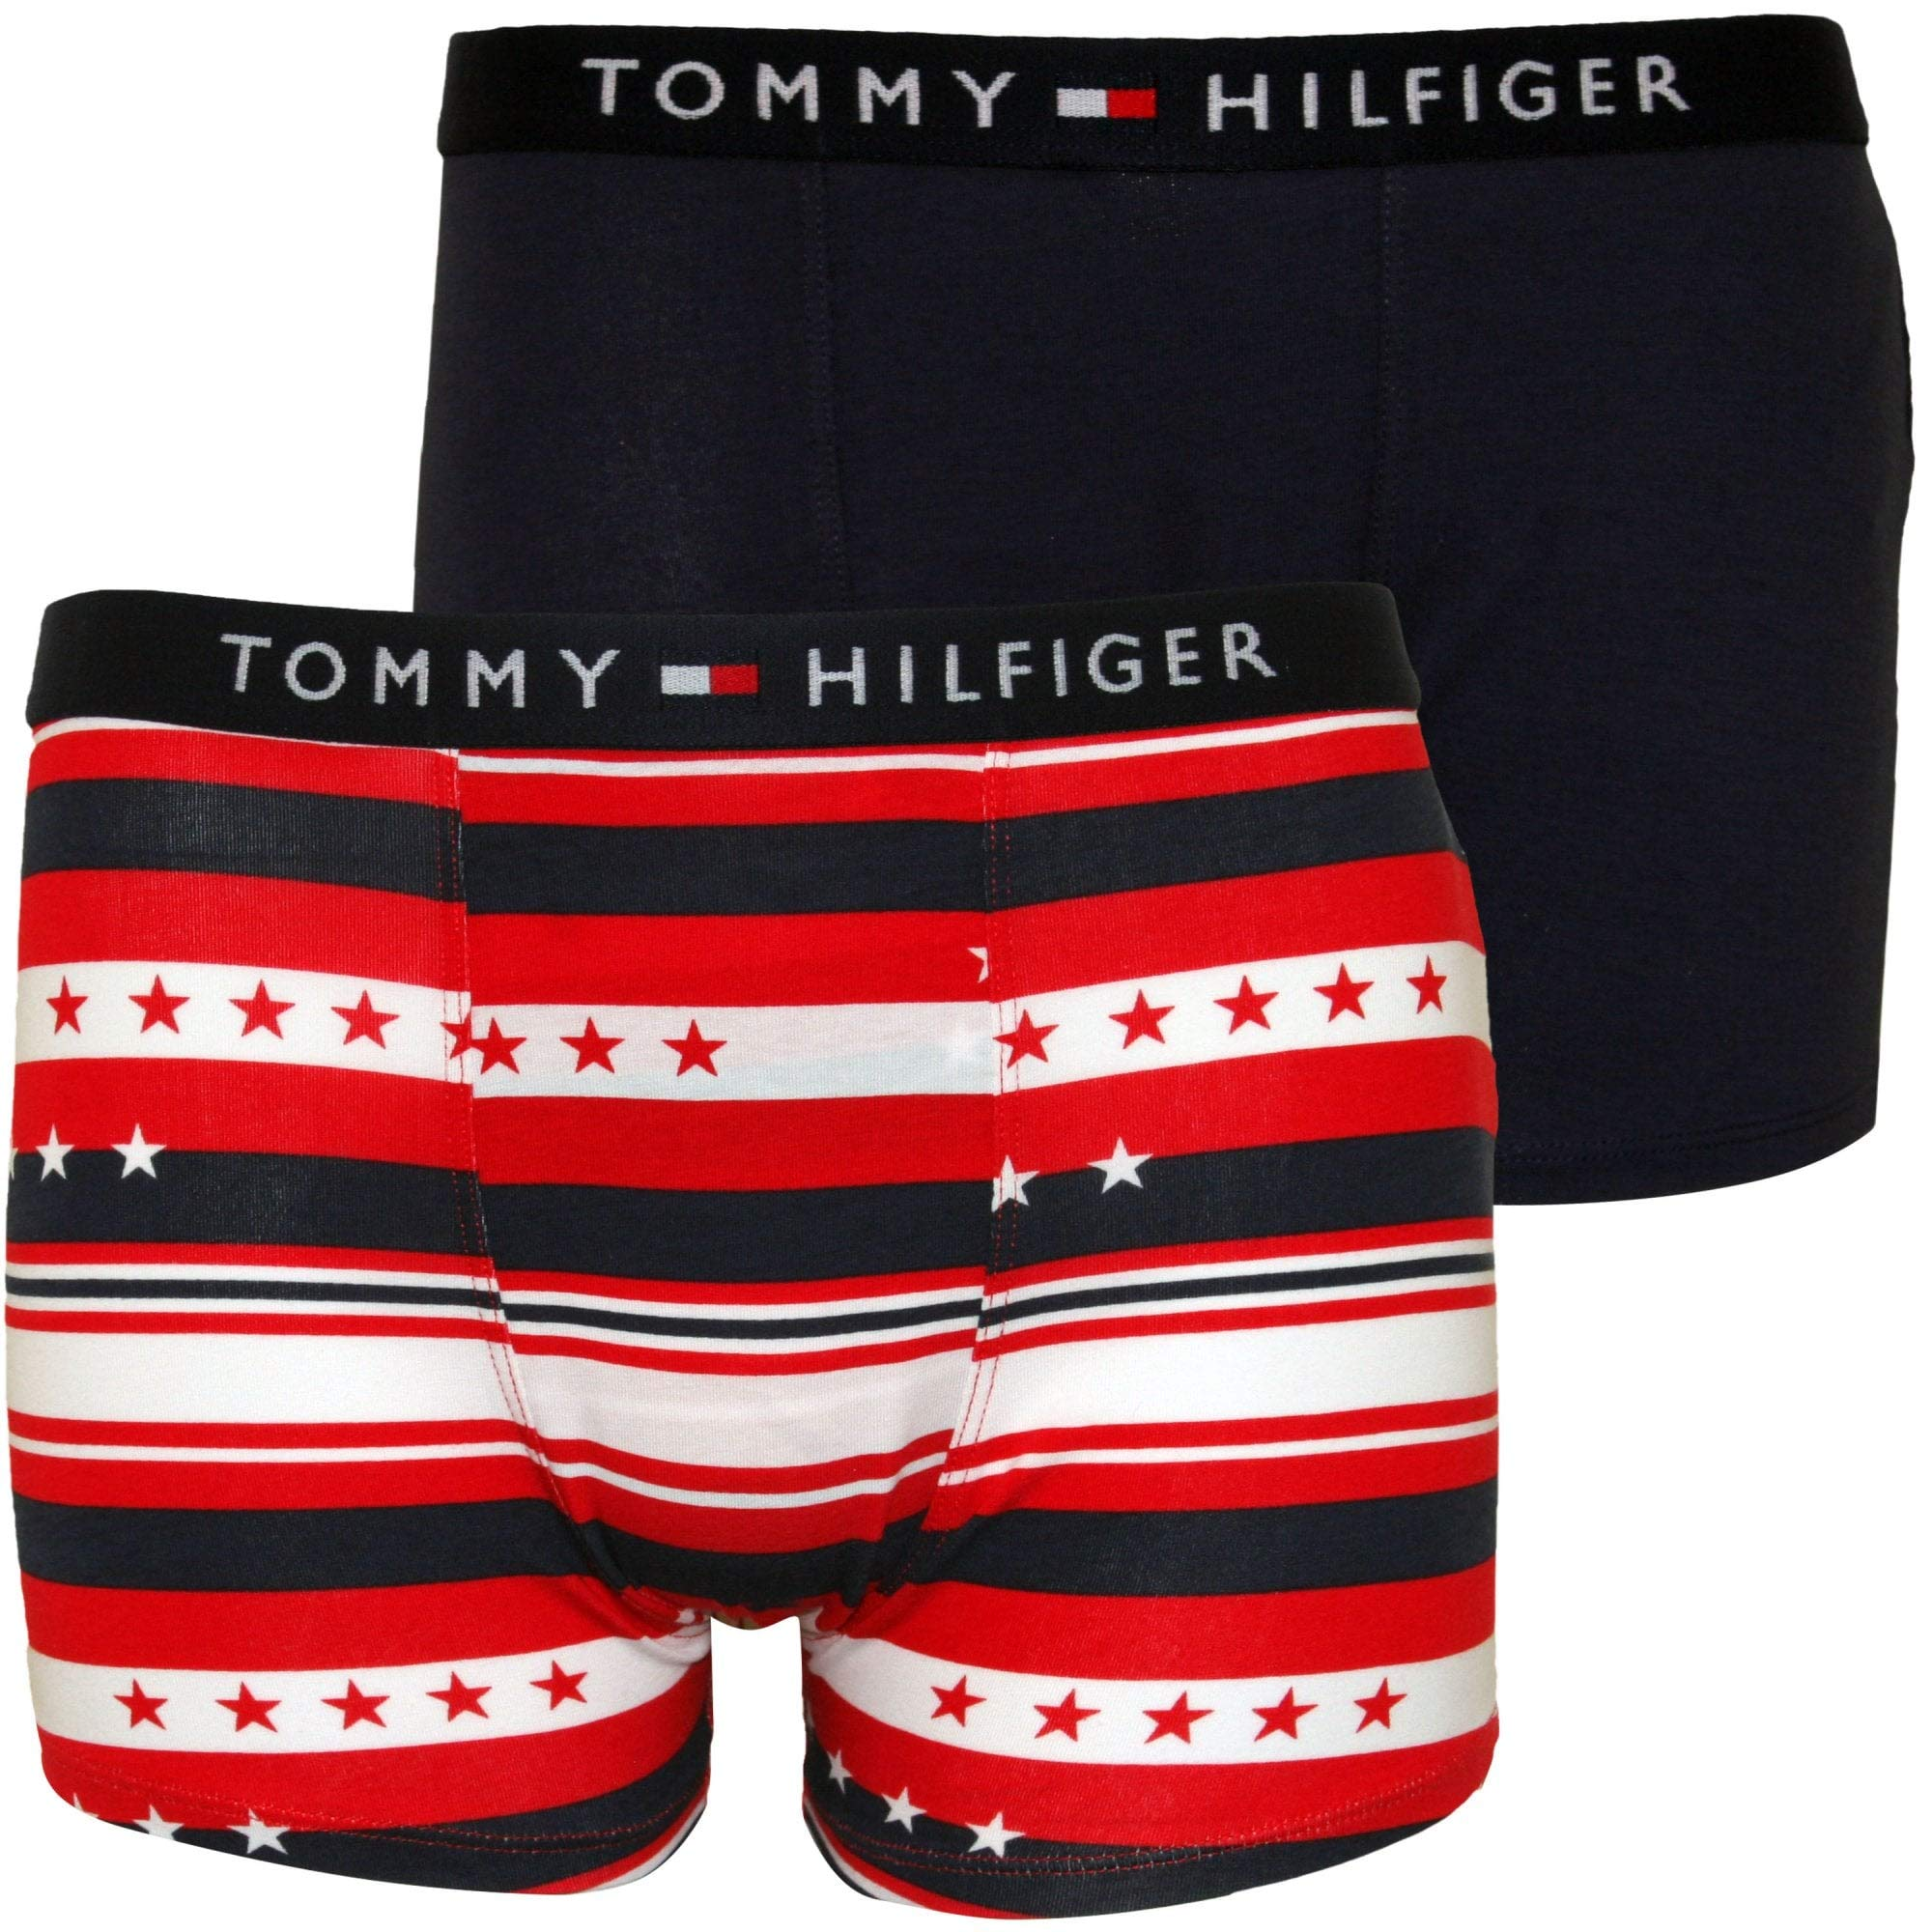 Tommy Hilfiger 2-Pack Stars & Stripes Boys Boxer Trunks, Navy/Red Age 10-12 Navy Blue/Red